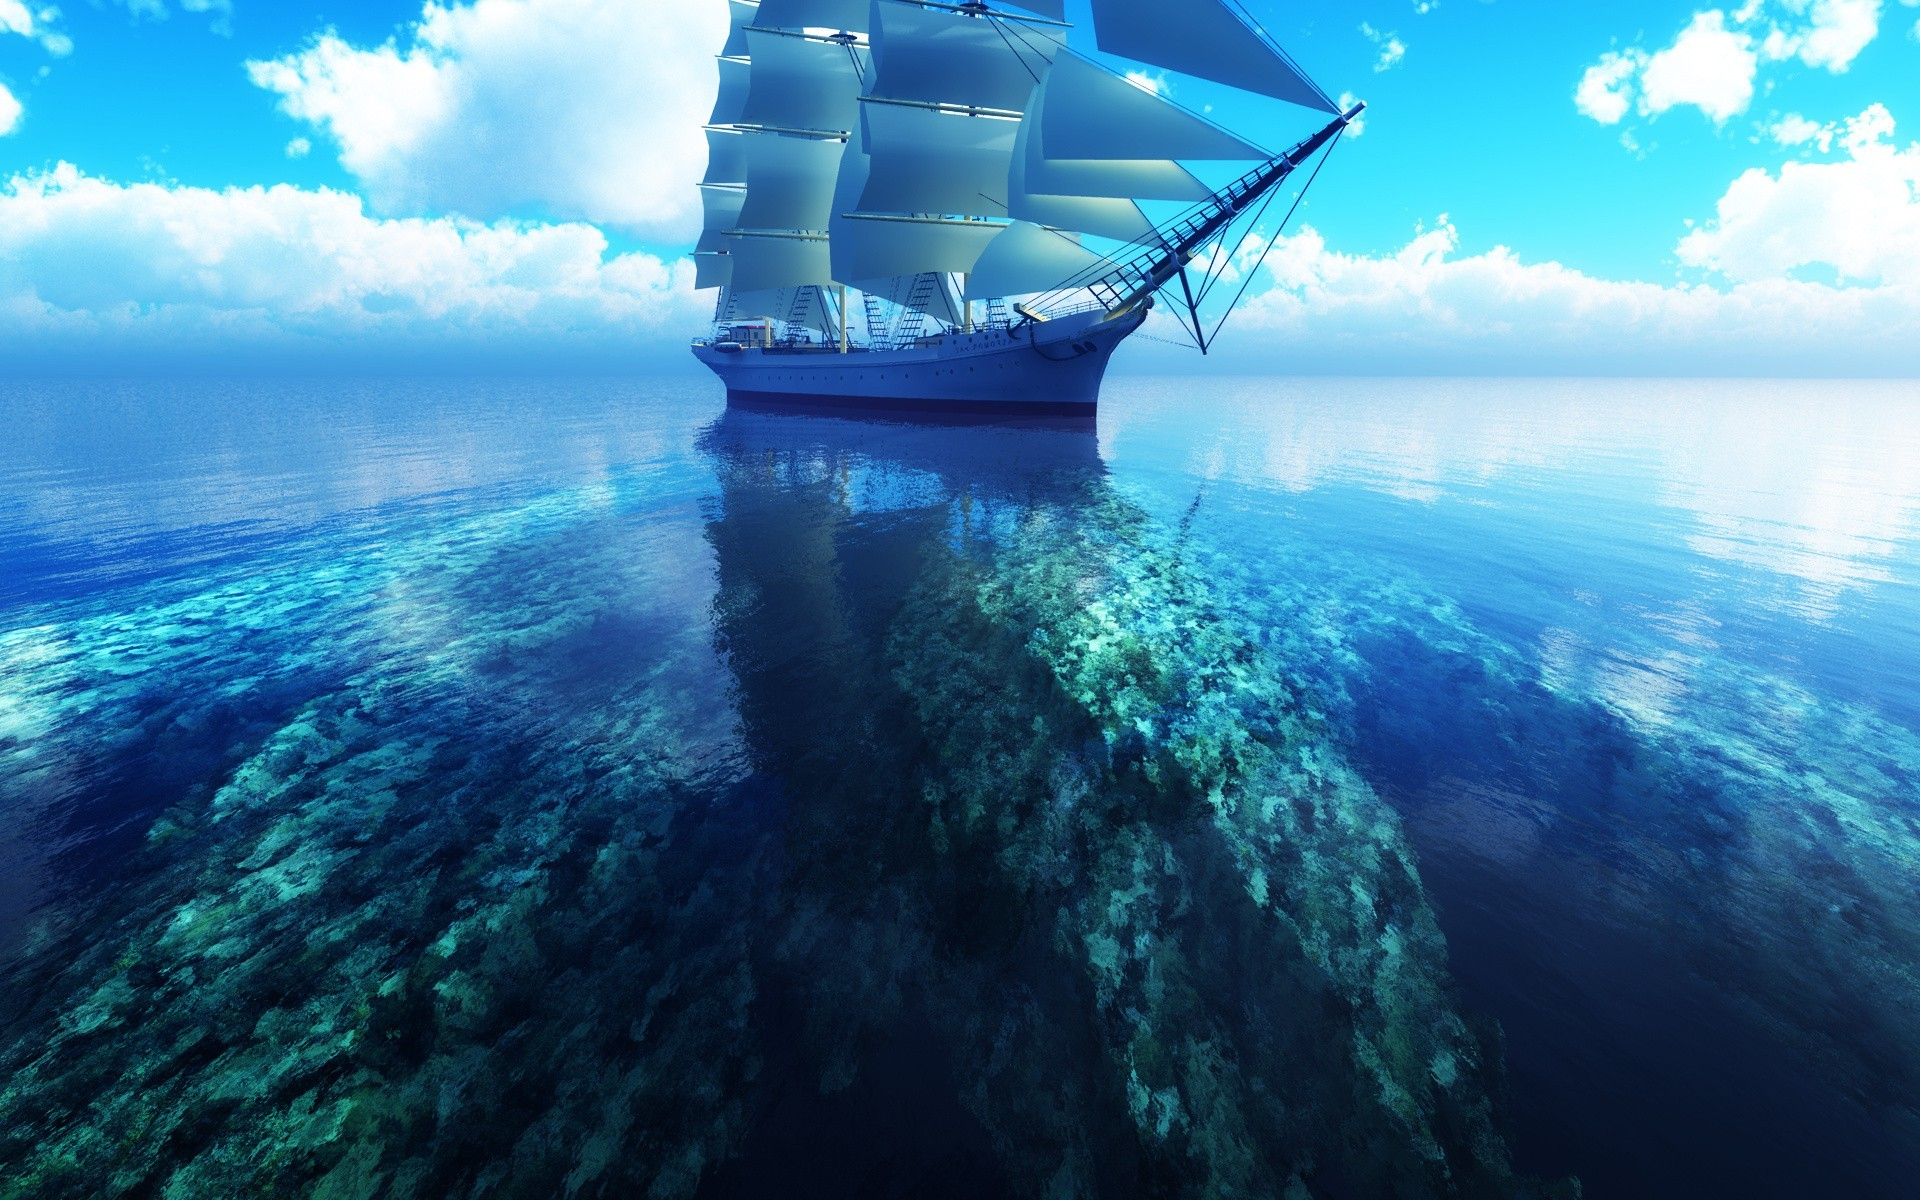 Clouds sea ships digital art skyscapes coral reef wallpaper | |  13872 | WallpaperUP